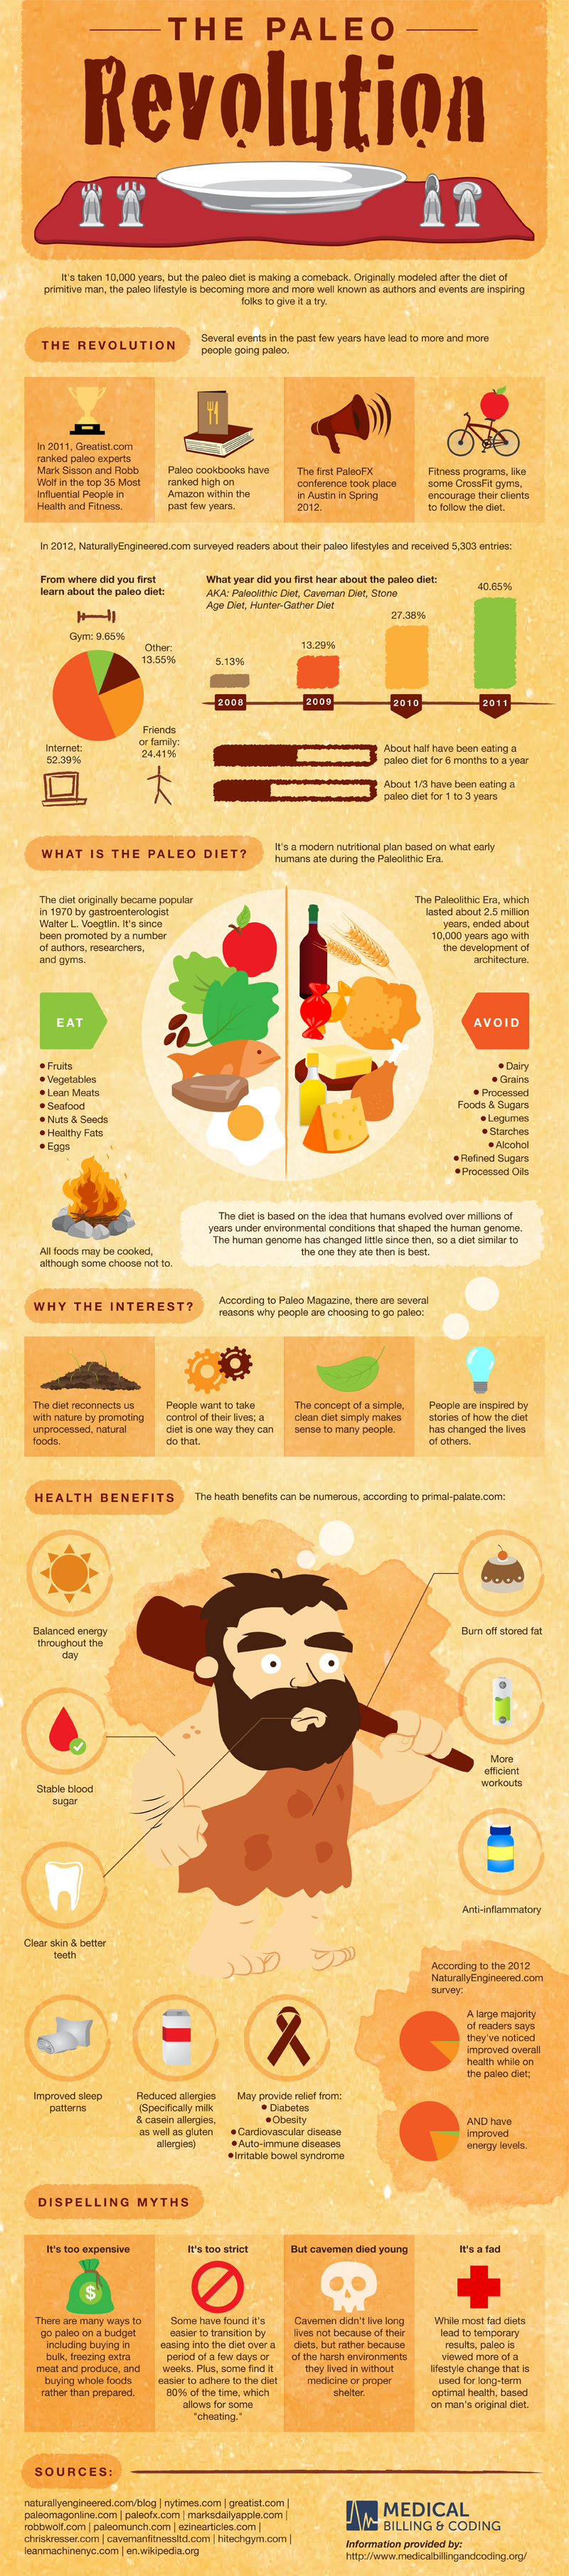 paleo-revolution-infographic